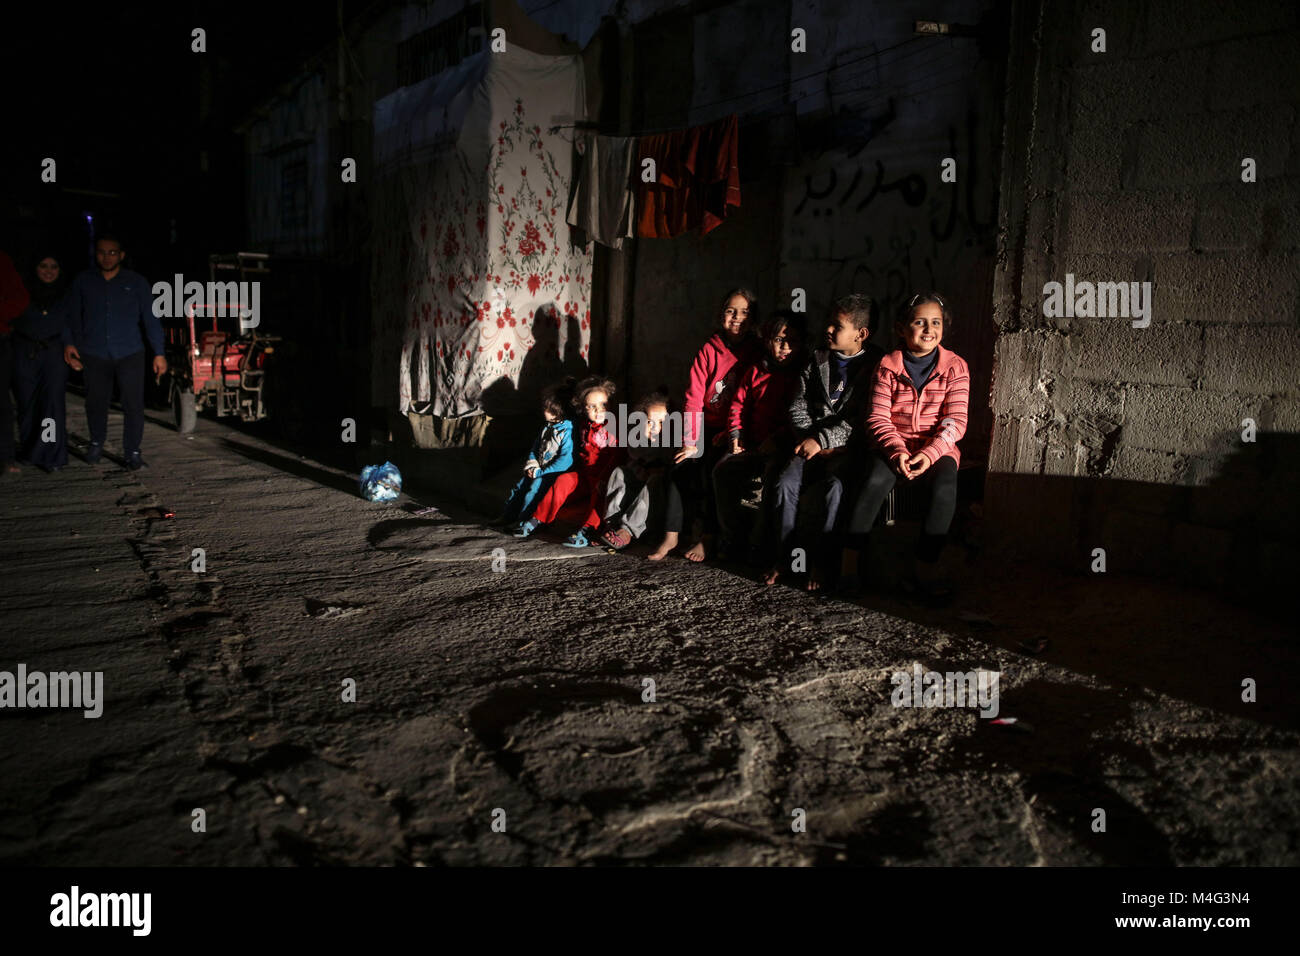 Gaza City, Palestinian Territories. 15th Feb, 2018. Palestinian children play in a dark street during apower outage - Stock Image